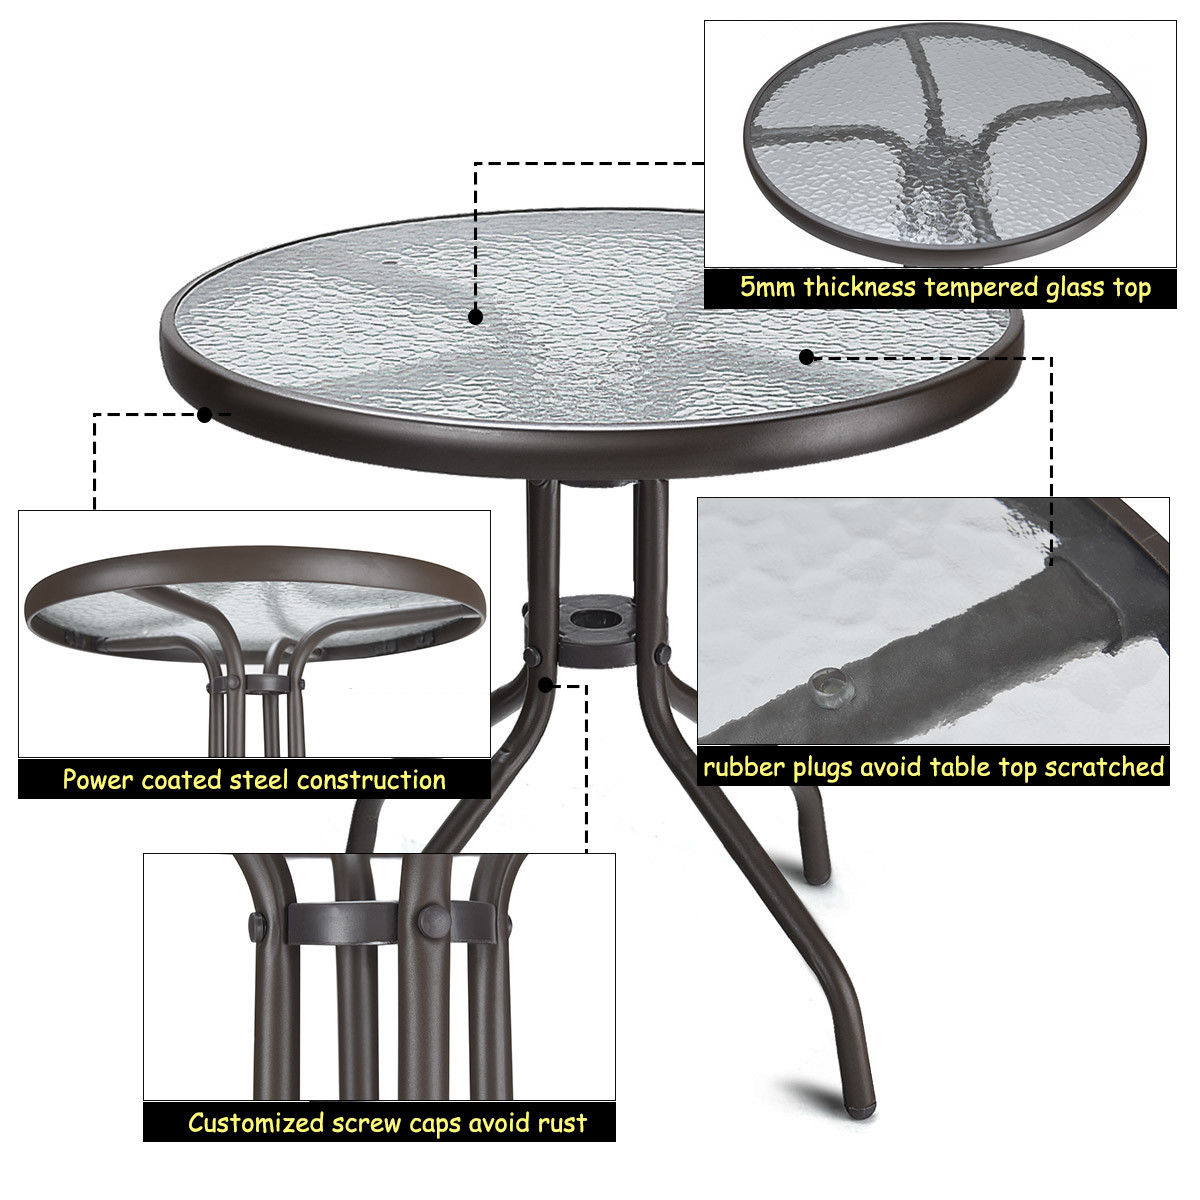 """24"""" Patio Round Table Tempered Glass Steel Frame Outdoor Pool Yard Garden - image 5 of 9"""